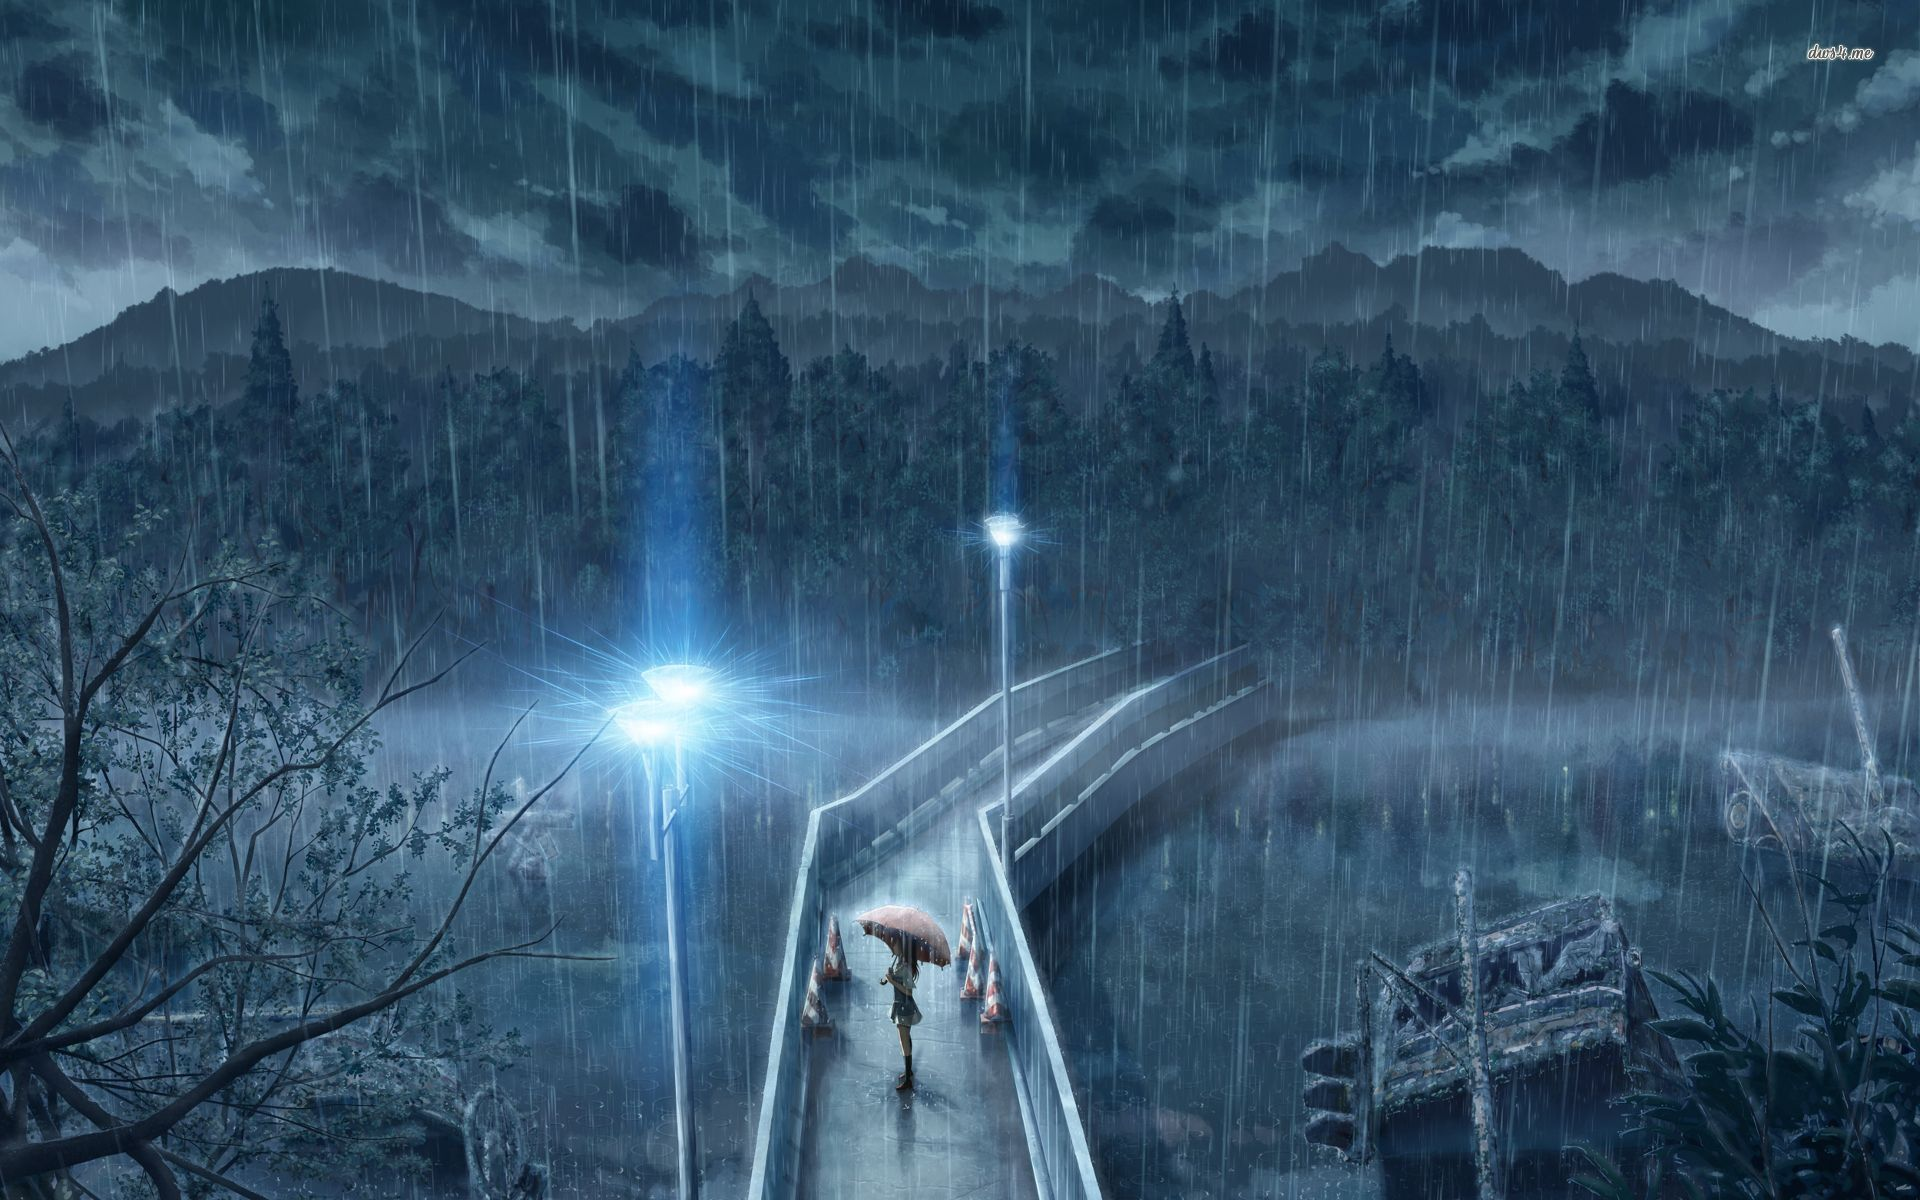 Anime rain scenery wallpapers top free anime rain - Anime rain wallpaper ...